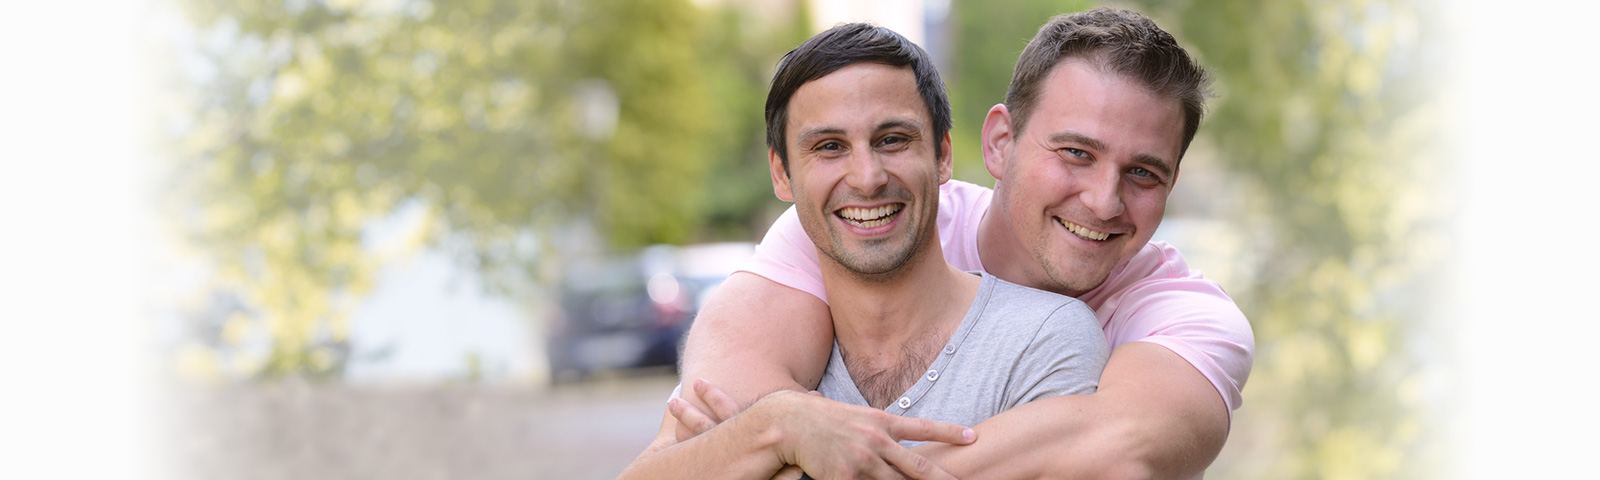 Jhb gay dating site